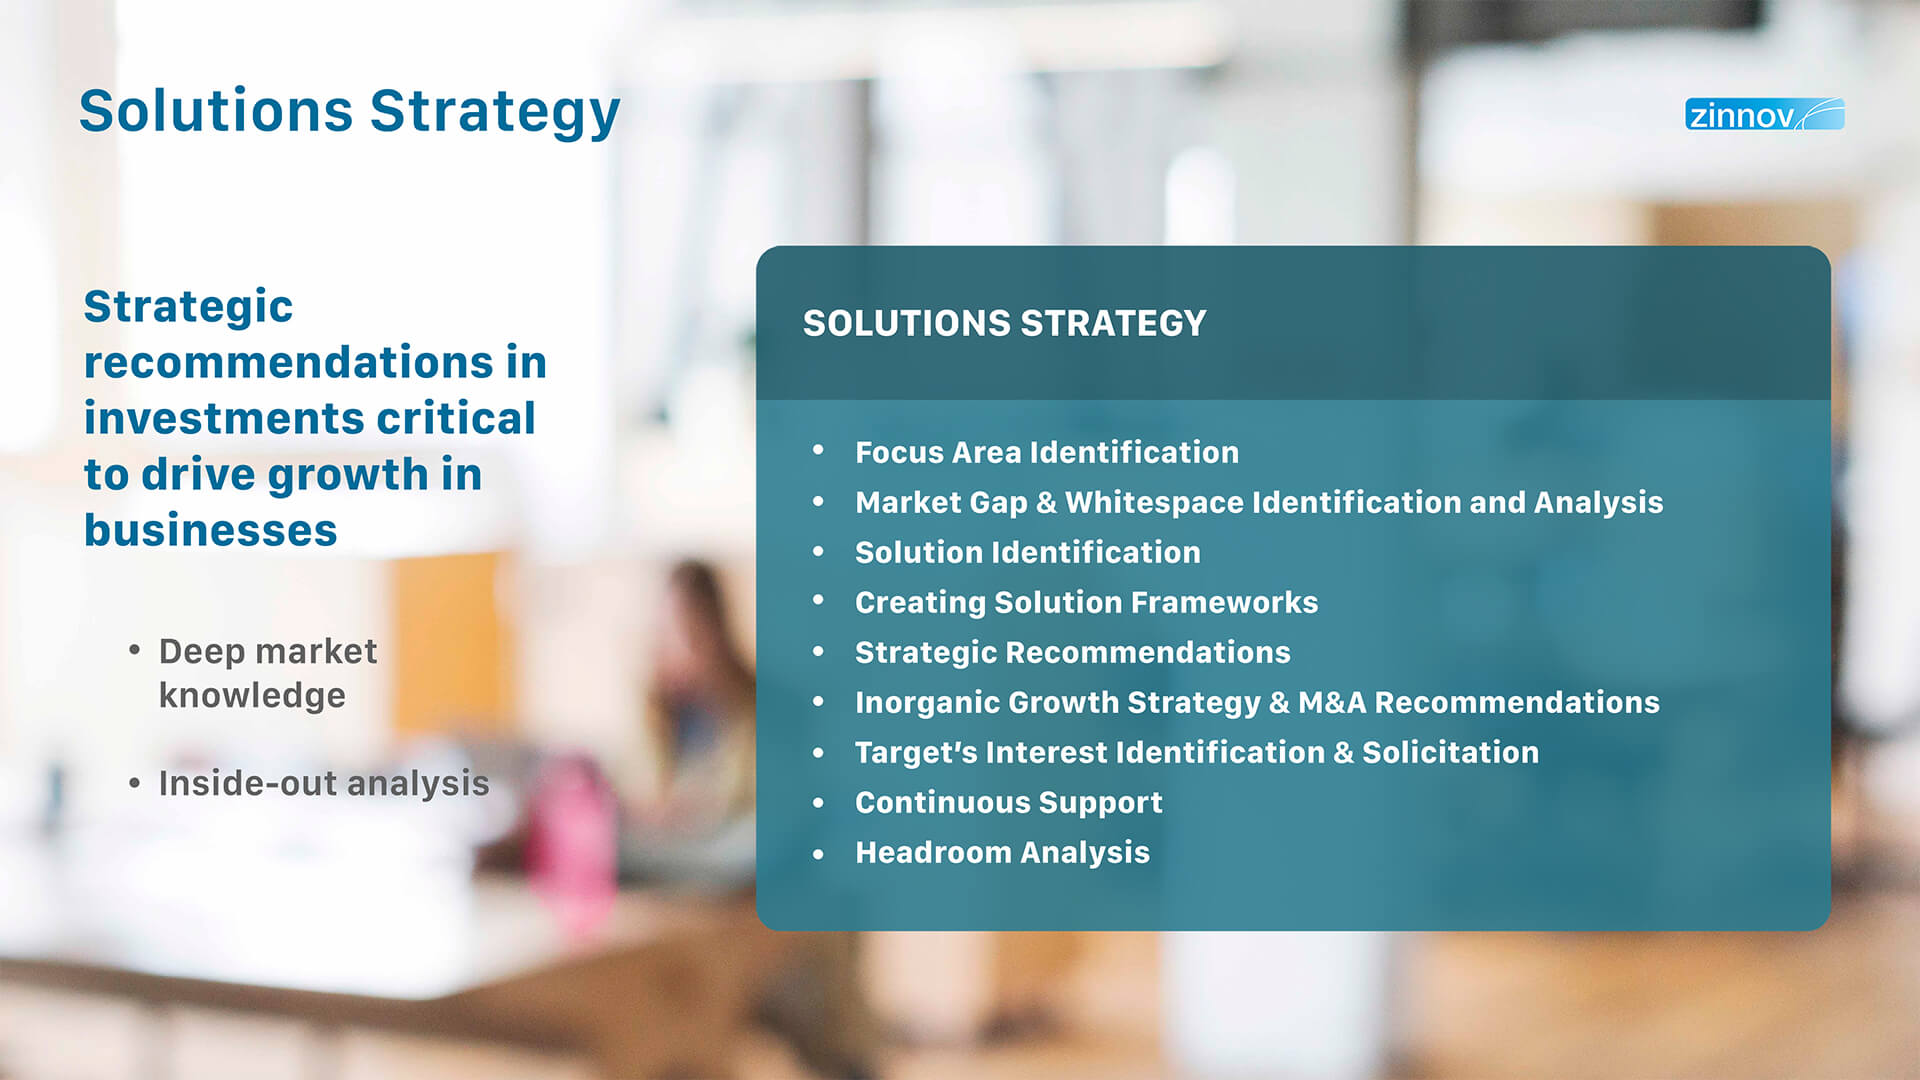 Solutions Strategy